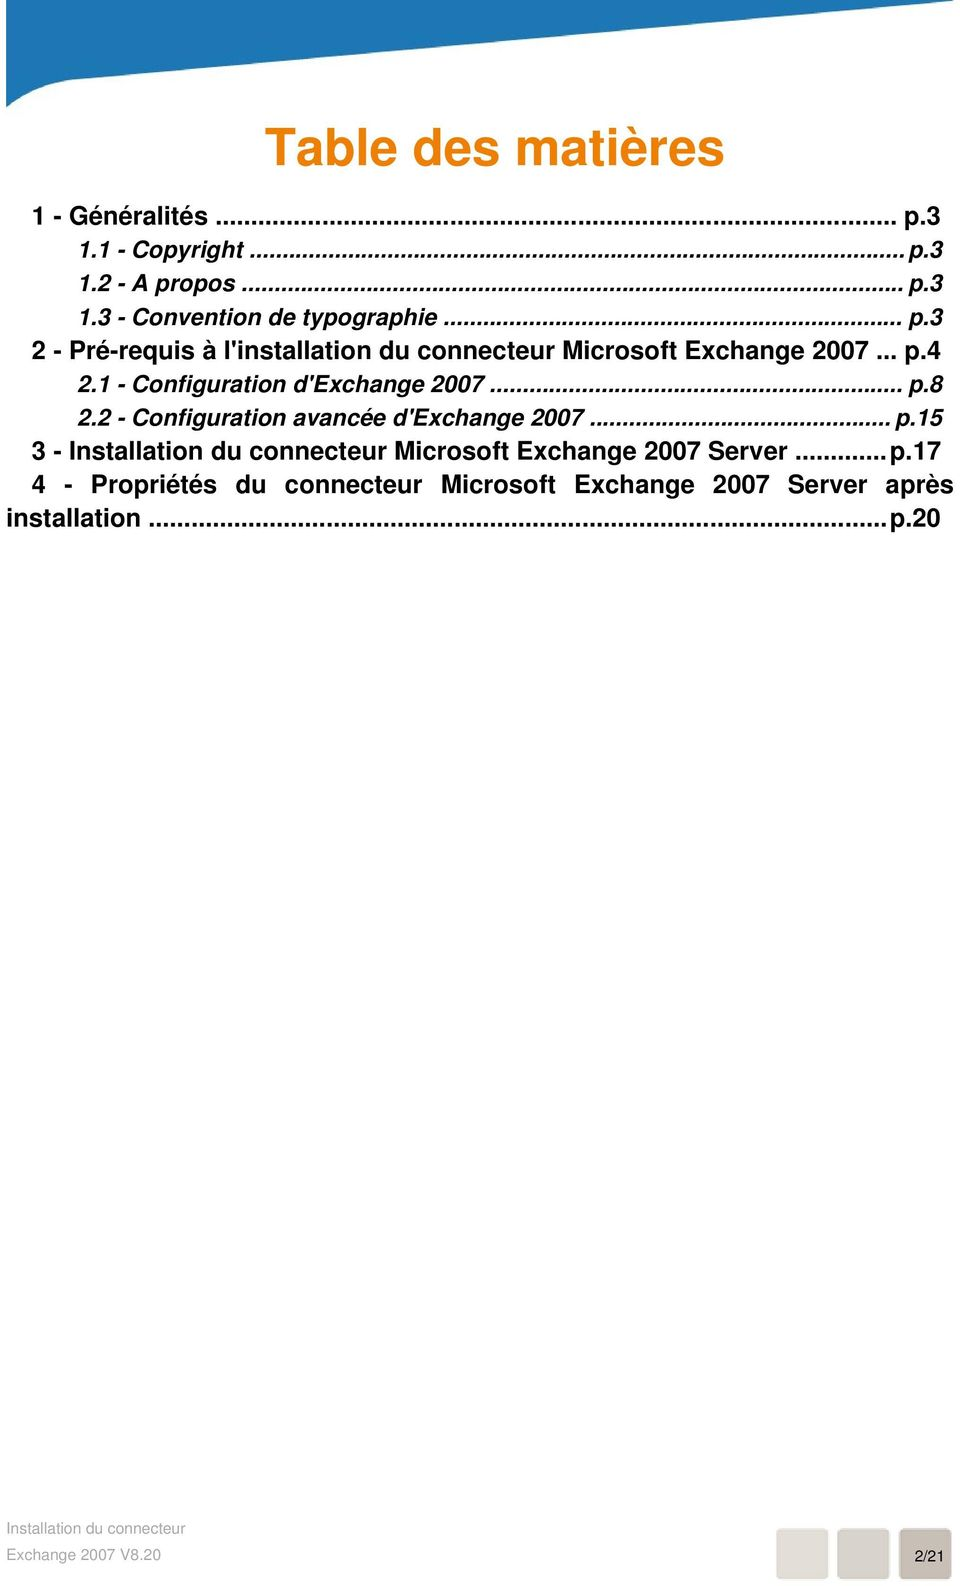 1 - Configuration d'exchange 2007... p.8 2.2 - Configuration avancée d'exchange 2007... p.15 3 - Microsoft Exchange 2007 Server.